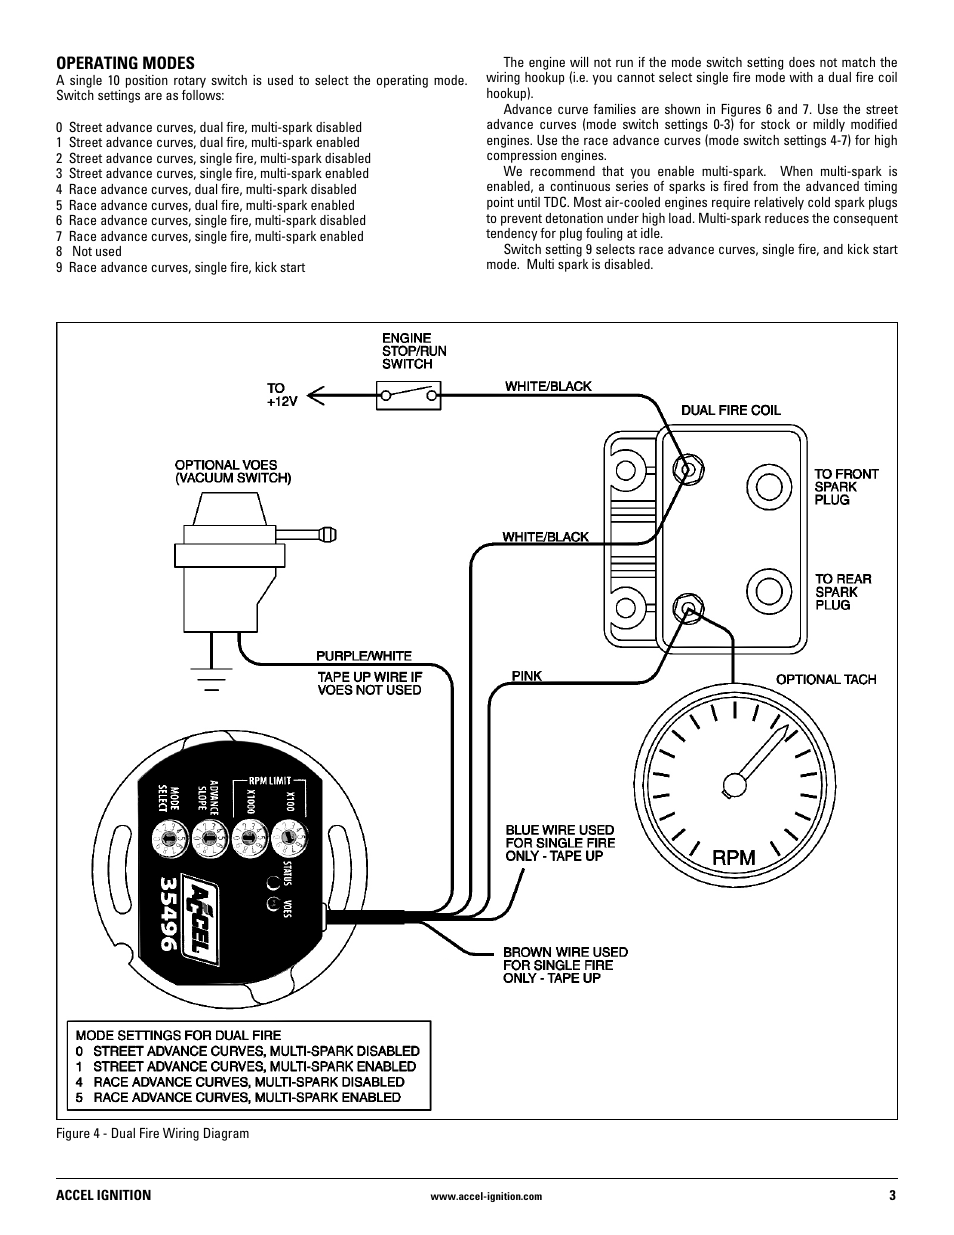 mallory ignition accel ignition 35496 page3?resize\\\\\\\\\\\\\\\=665%2C861 mallory unilite wiring diagram tamahuproject org mallory unilite wiring schematic at panicattacktreatment.co